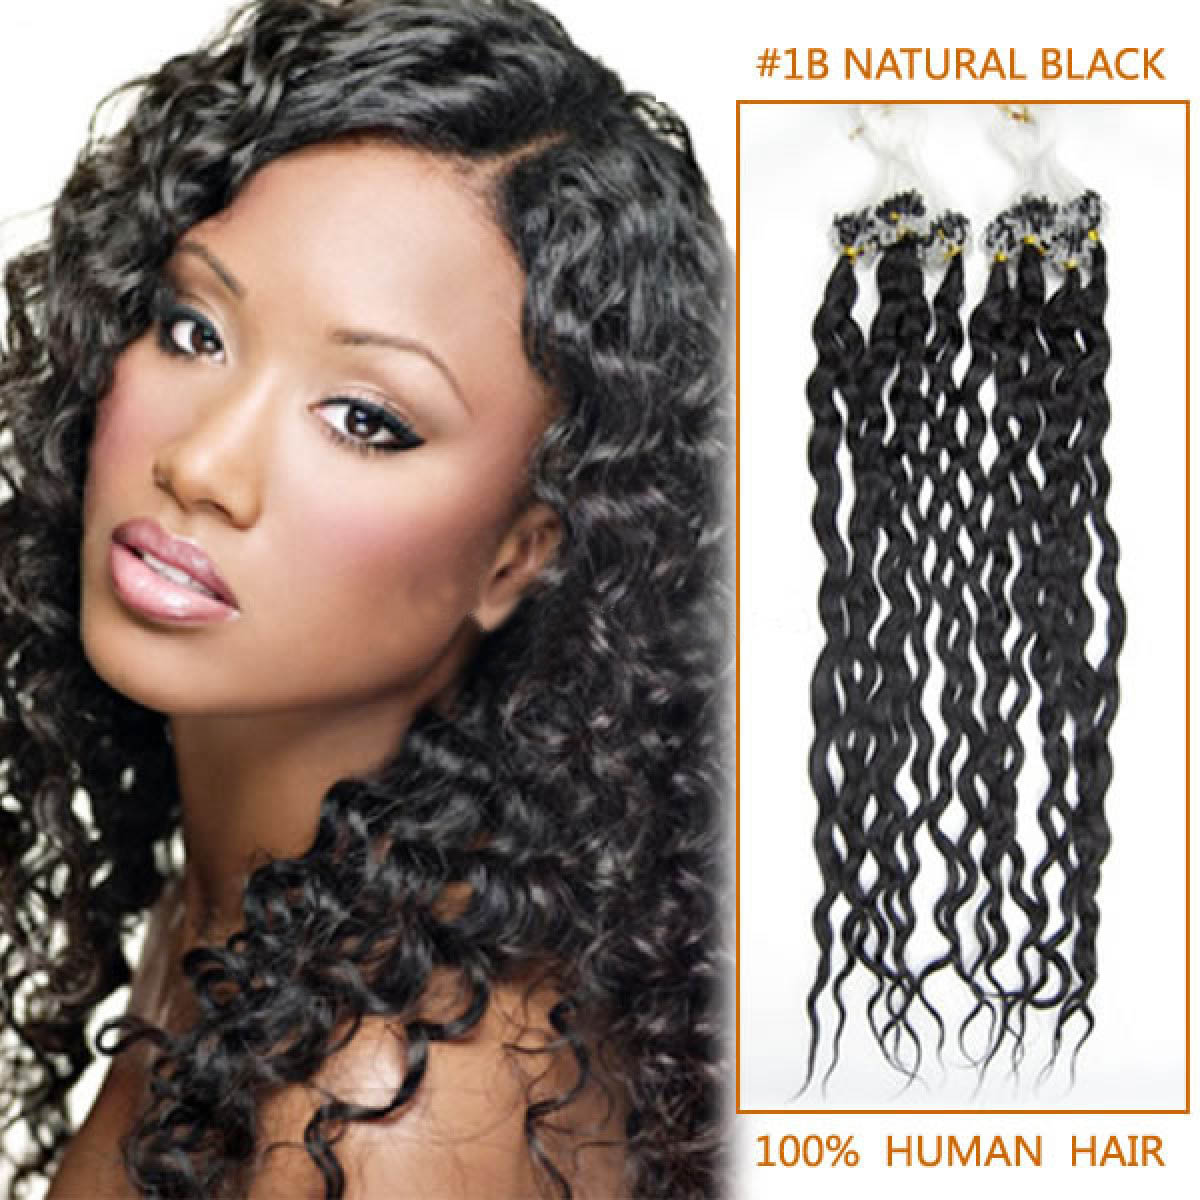 34 inch delicate  1b natural black curly micro loop hair extensions 100 strands 21667 t